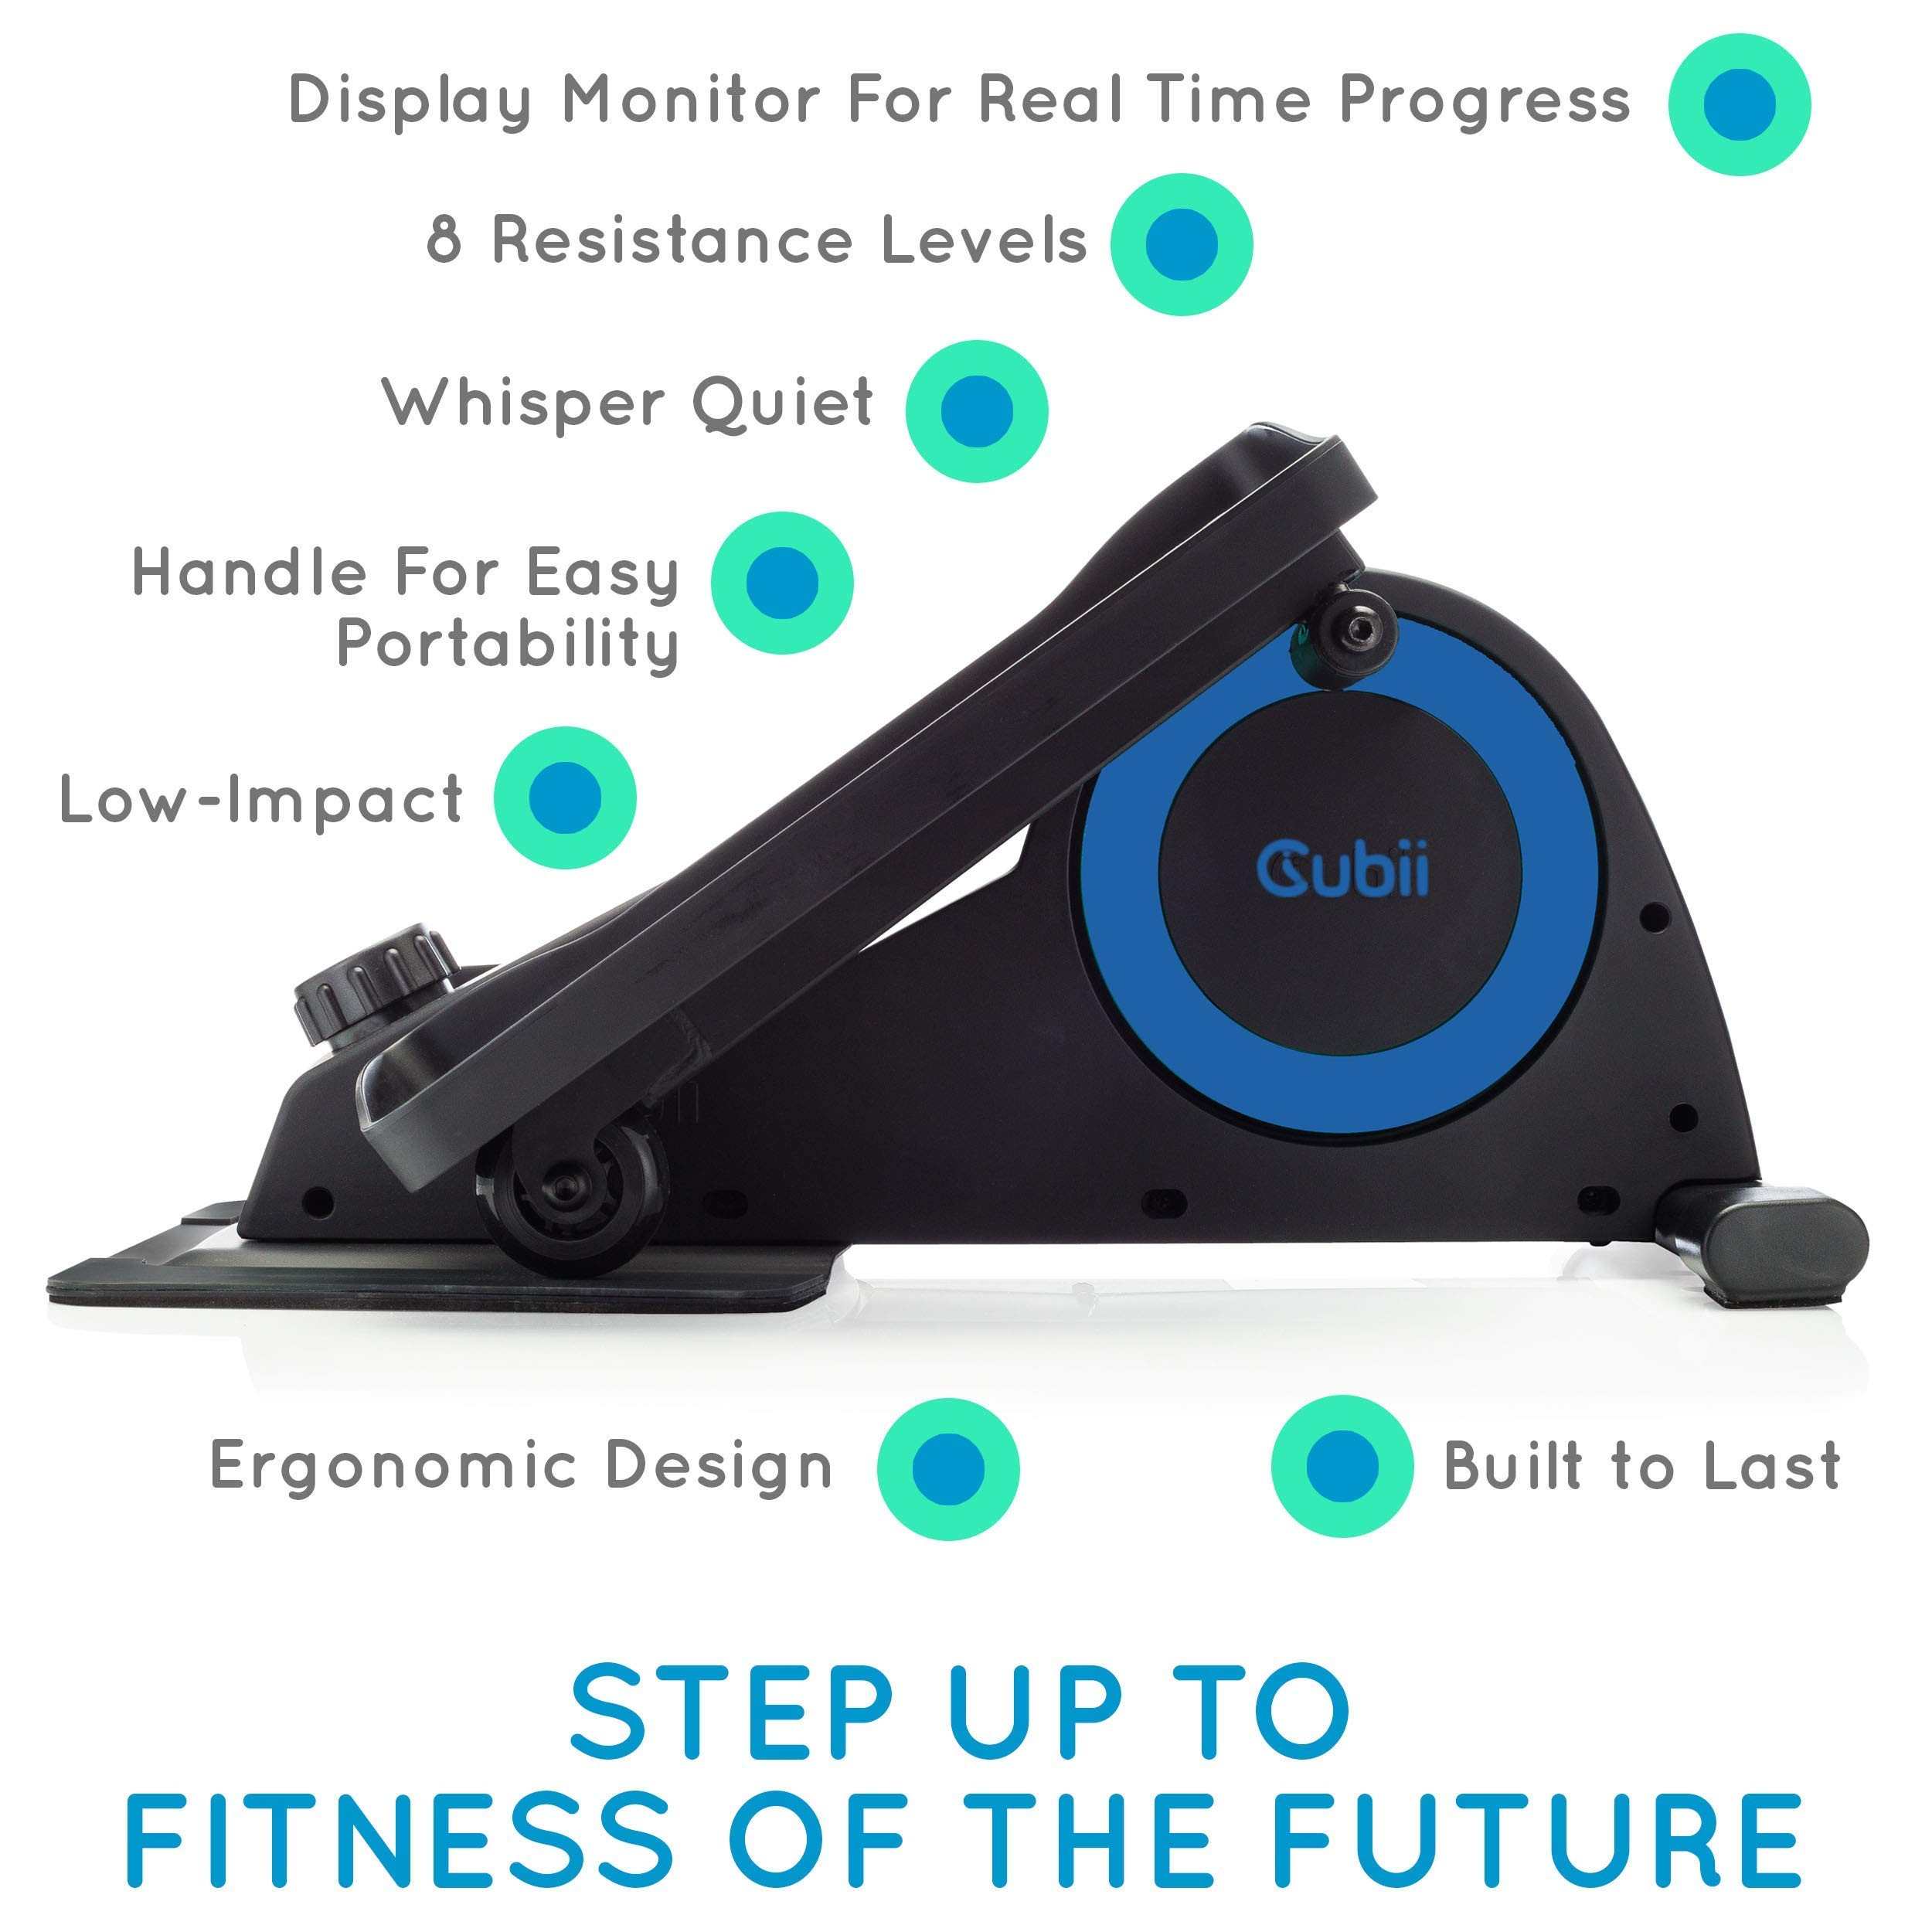 Cubii Jr: Desk Elliptical with Built in Display Monitor, Easy Assembly, Quiet & Compact, Adjustable Resistance (Royal Blue) (Renewed) by Cubii (Image #2)